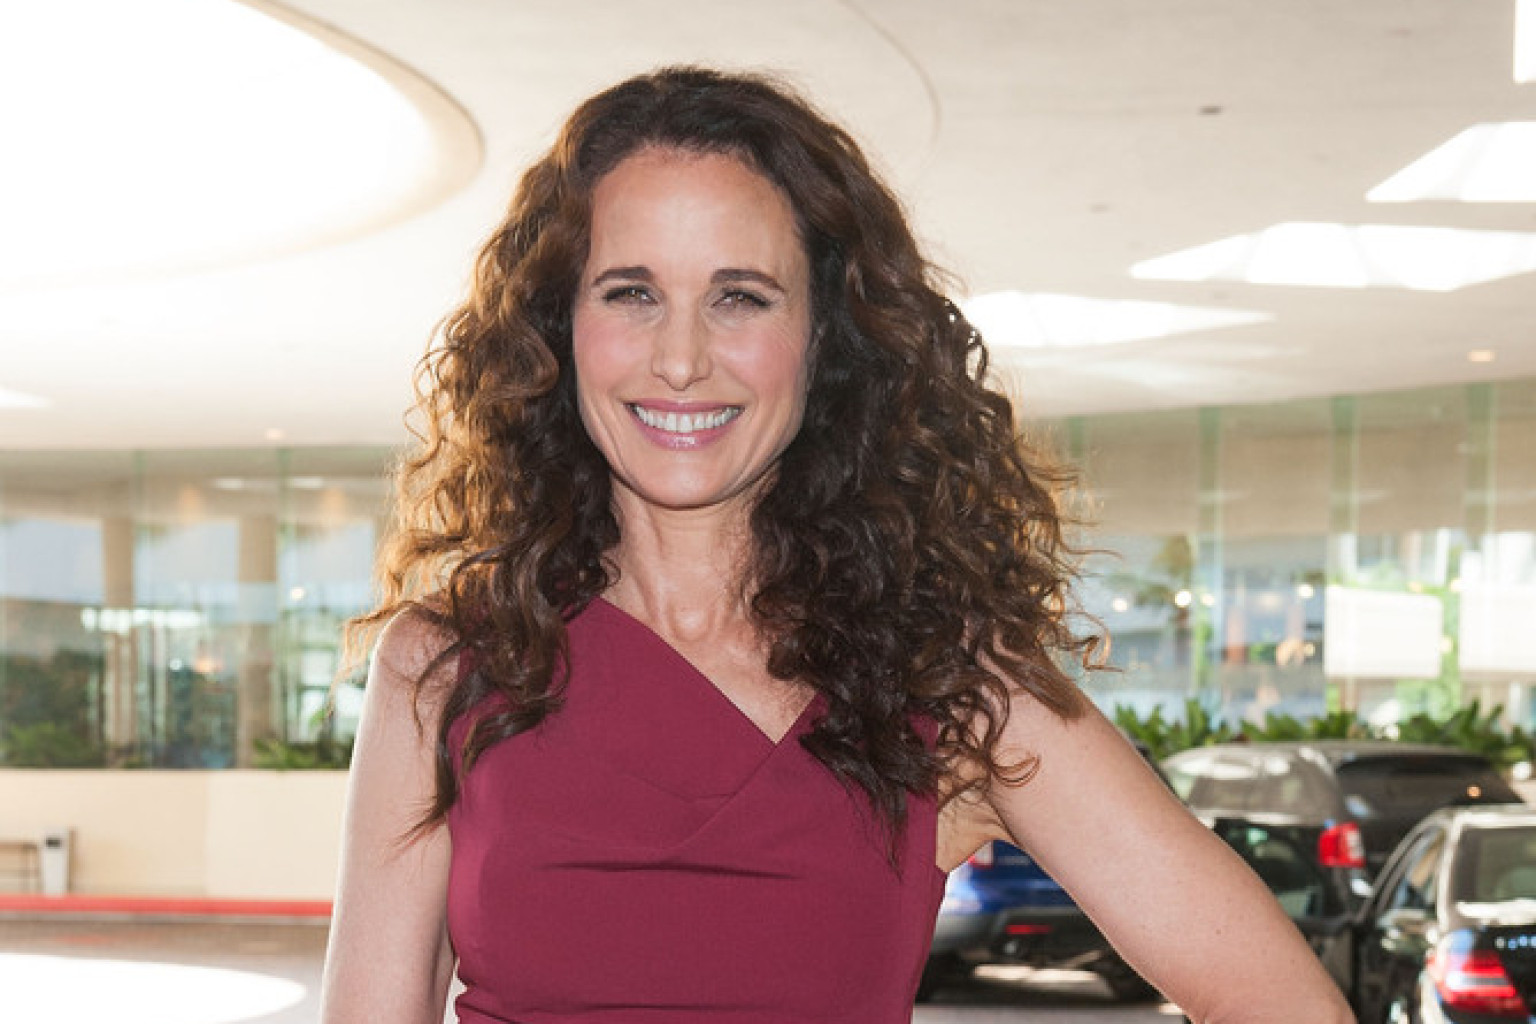 Andie macdowell pictures